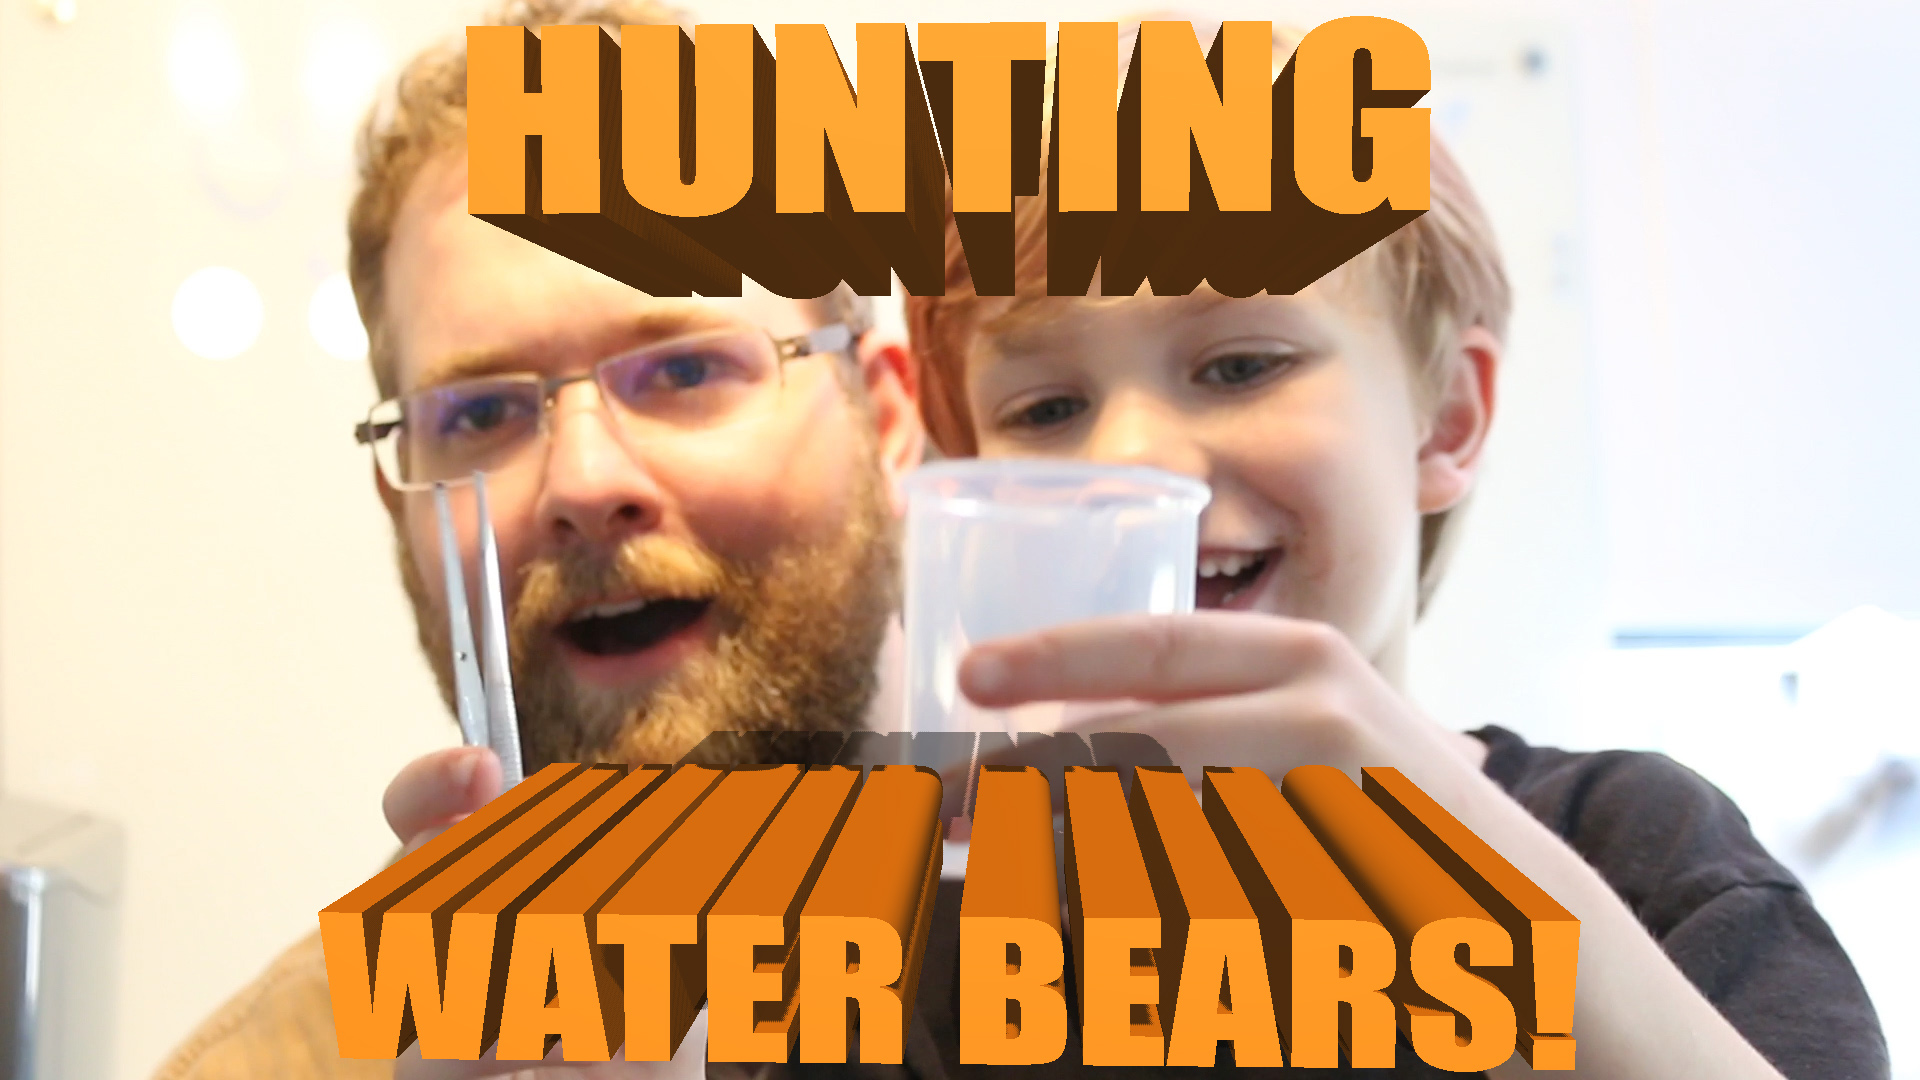 SCIENCE with BEARS! Water Bear Hunting preview